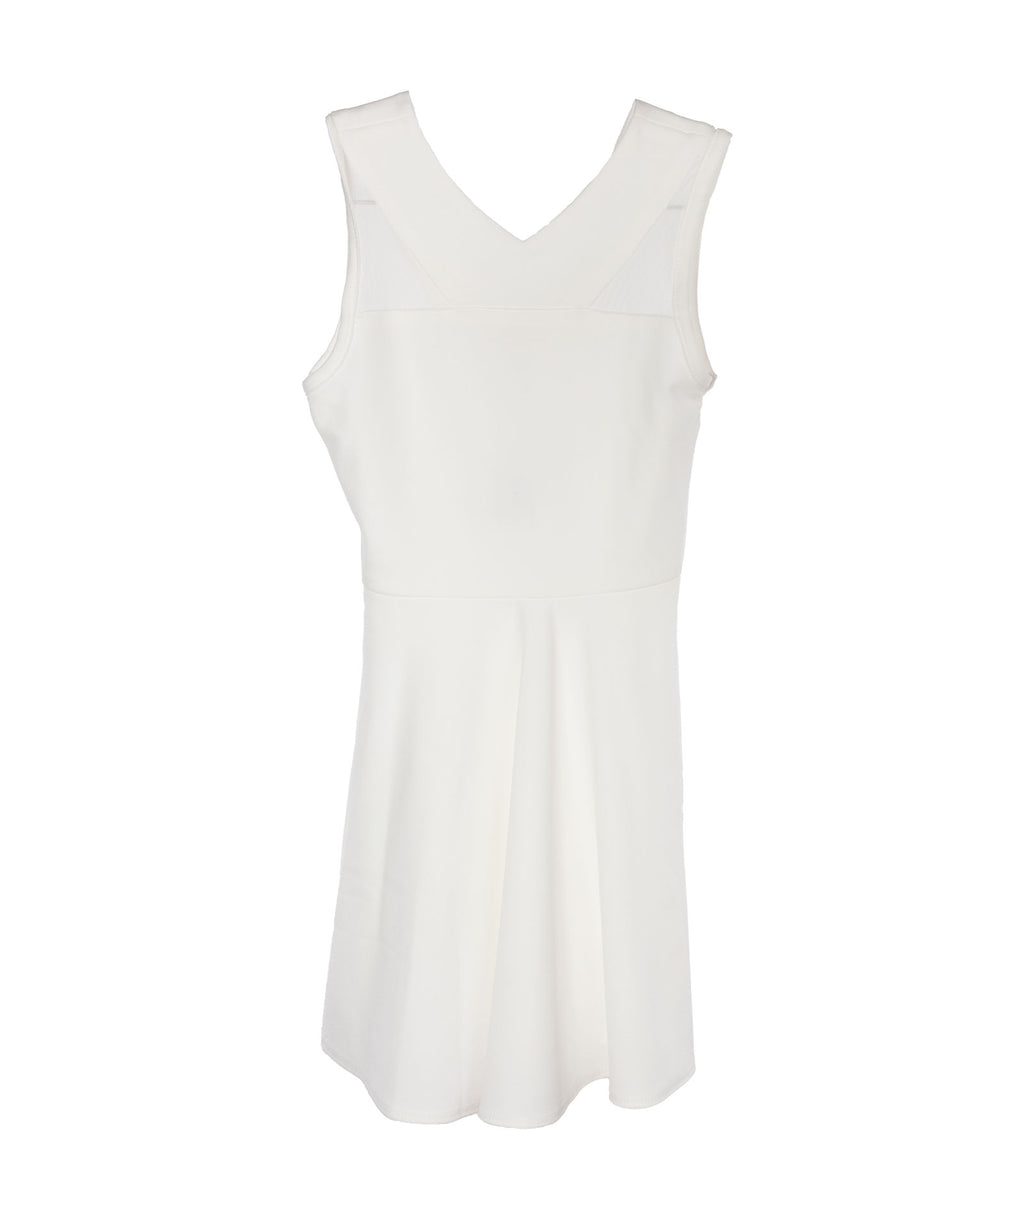 Sally Miller Girls Ivory Jill Dress